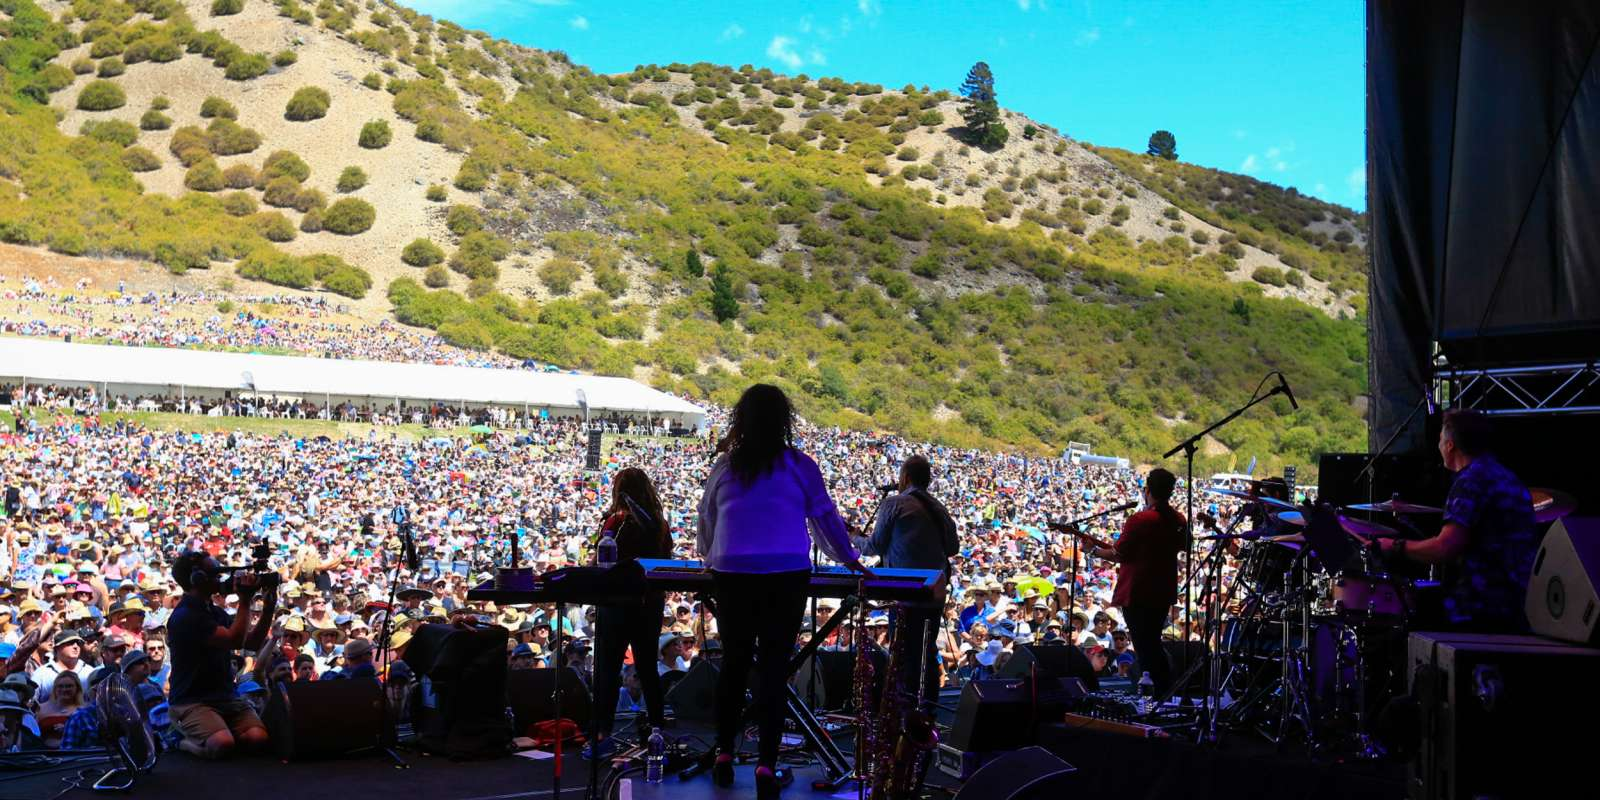 Gibbston Valley Winery Summer Concert stage